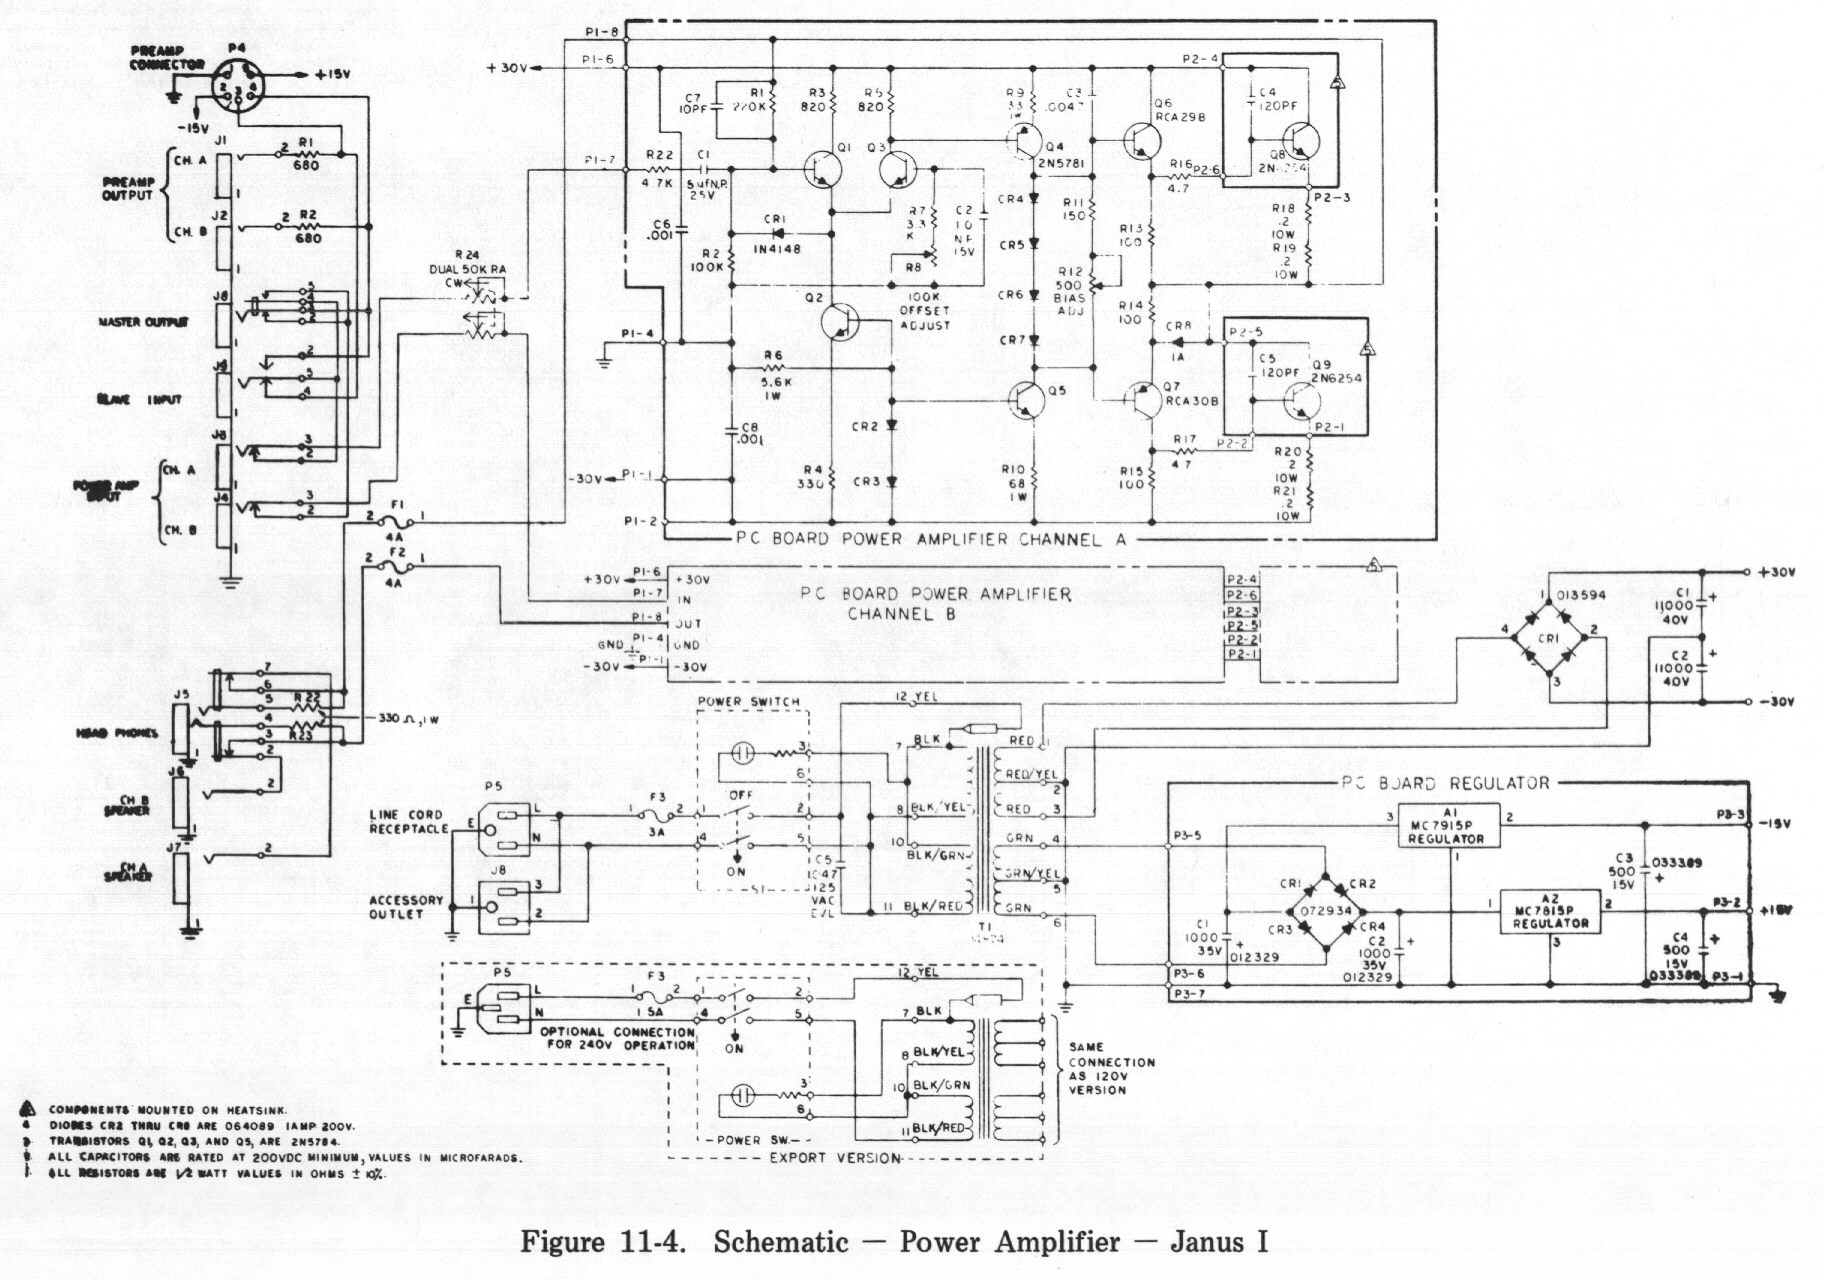 Schematic Power Amplifier